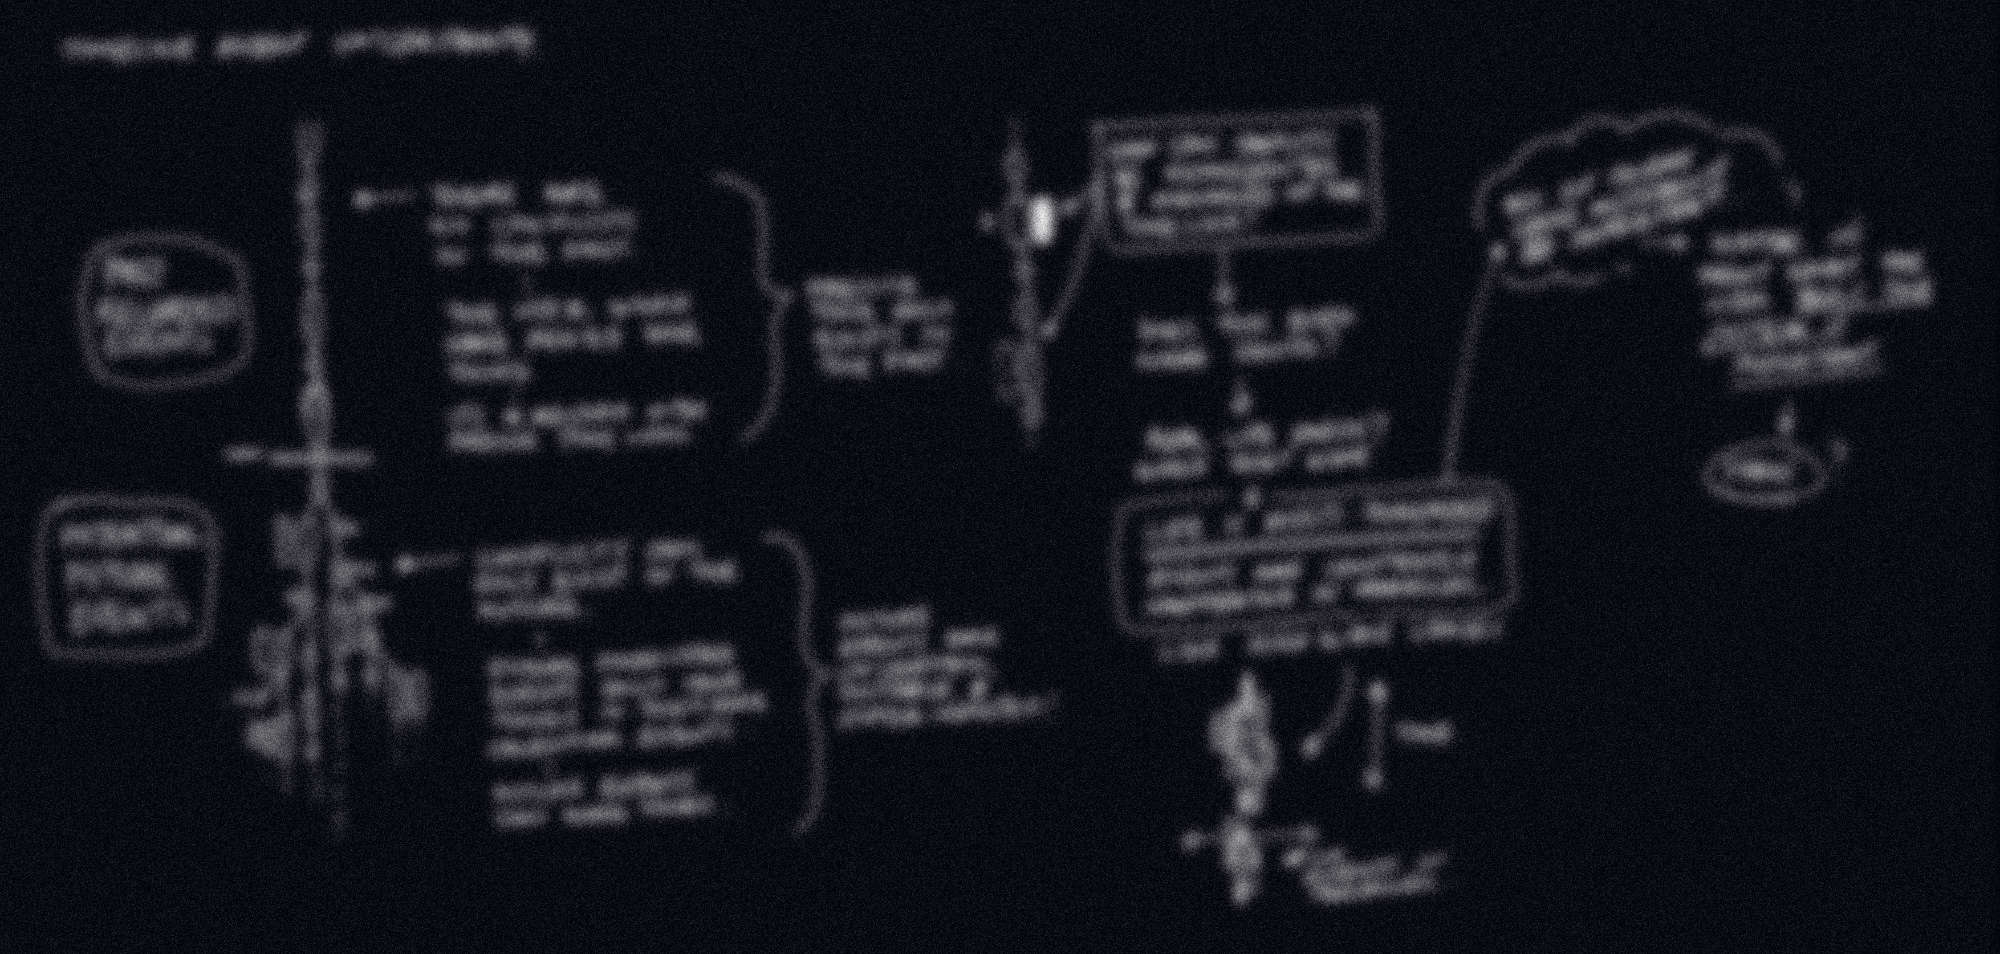 A redacted sketch of notes and illustrations